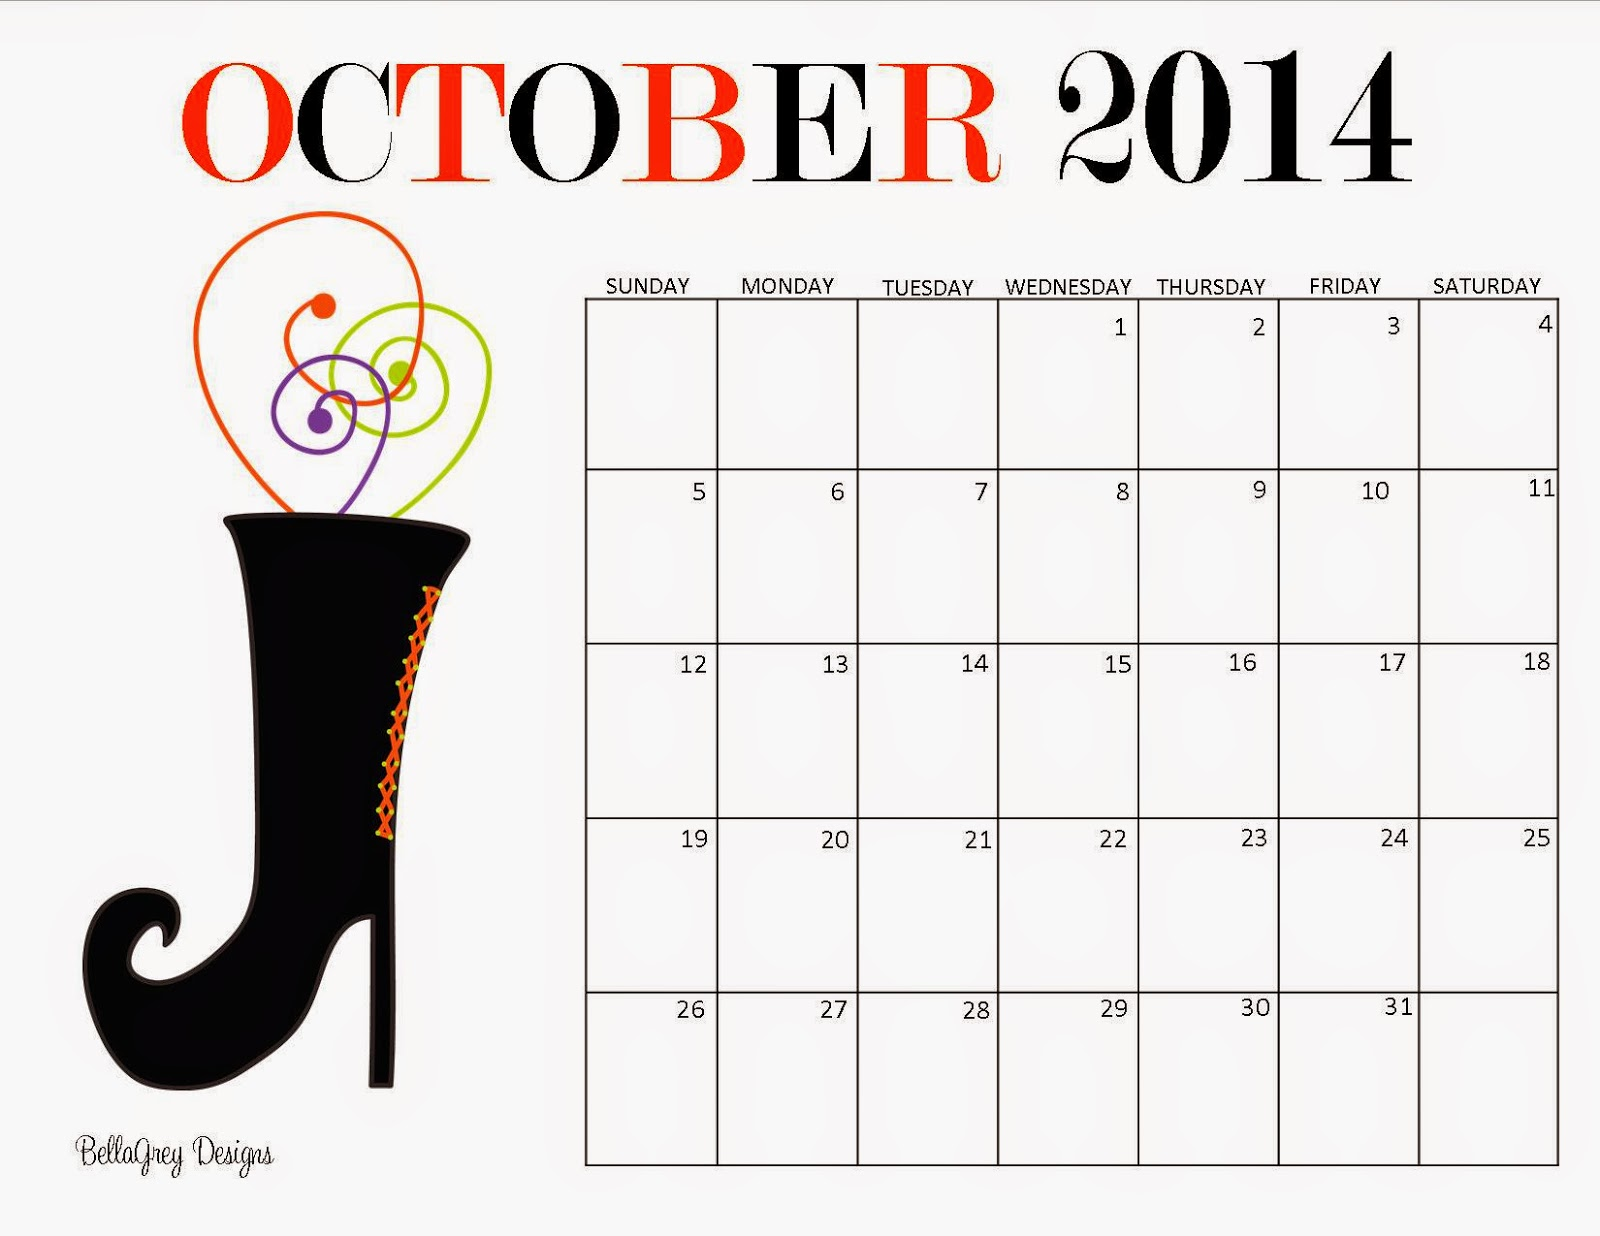 October 2014 calendar printable design